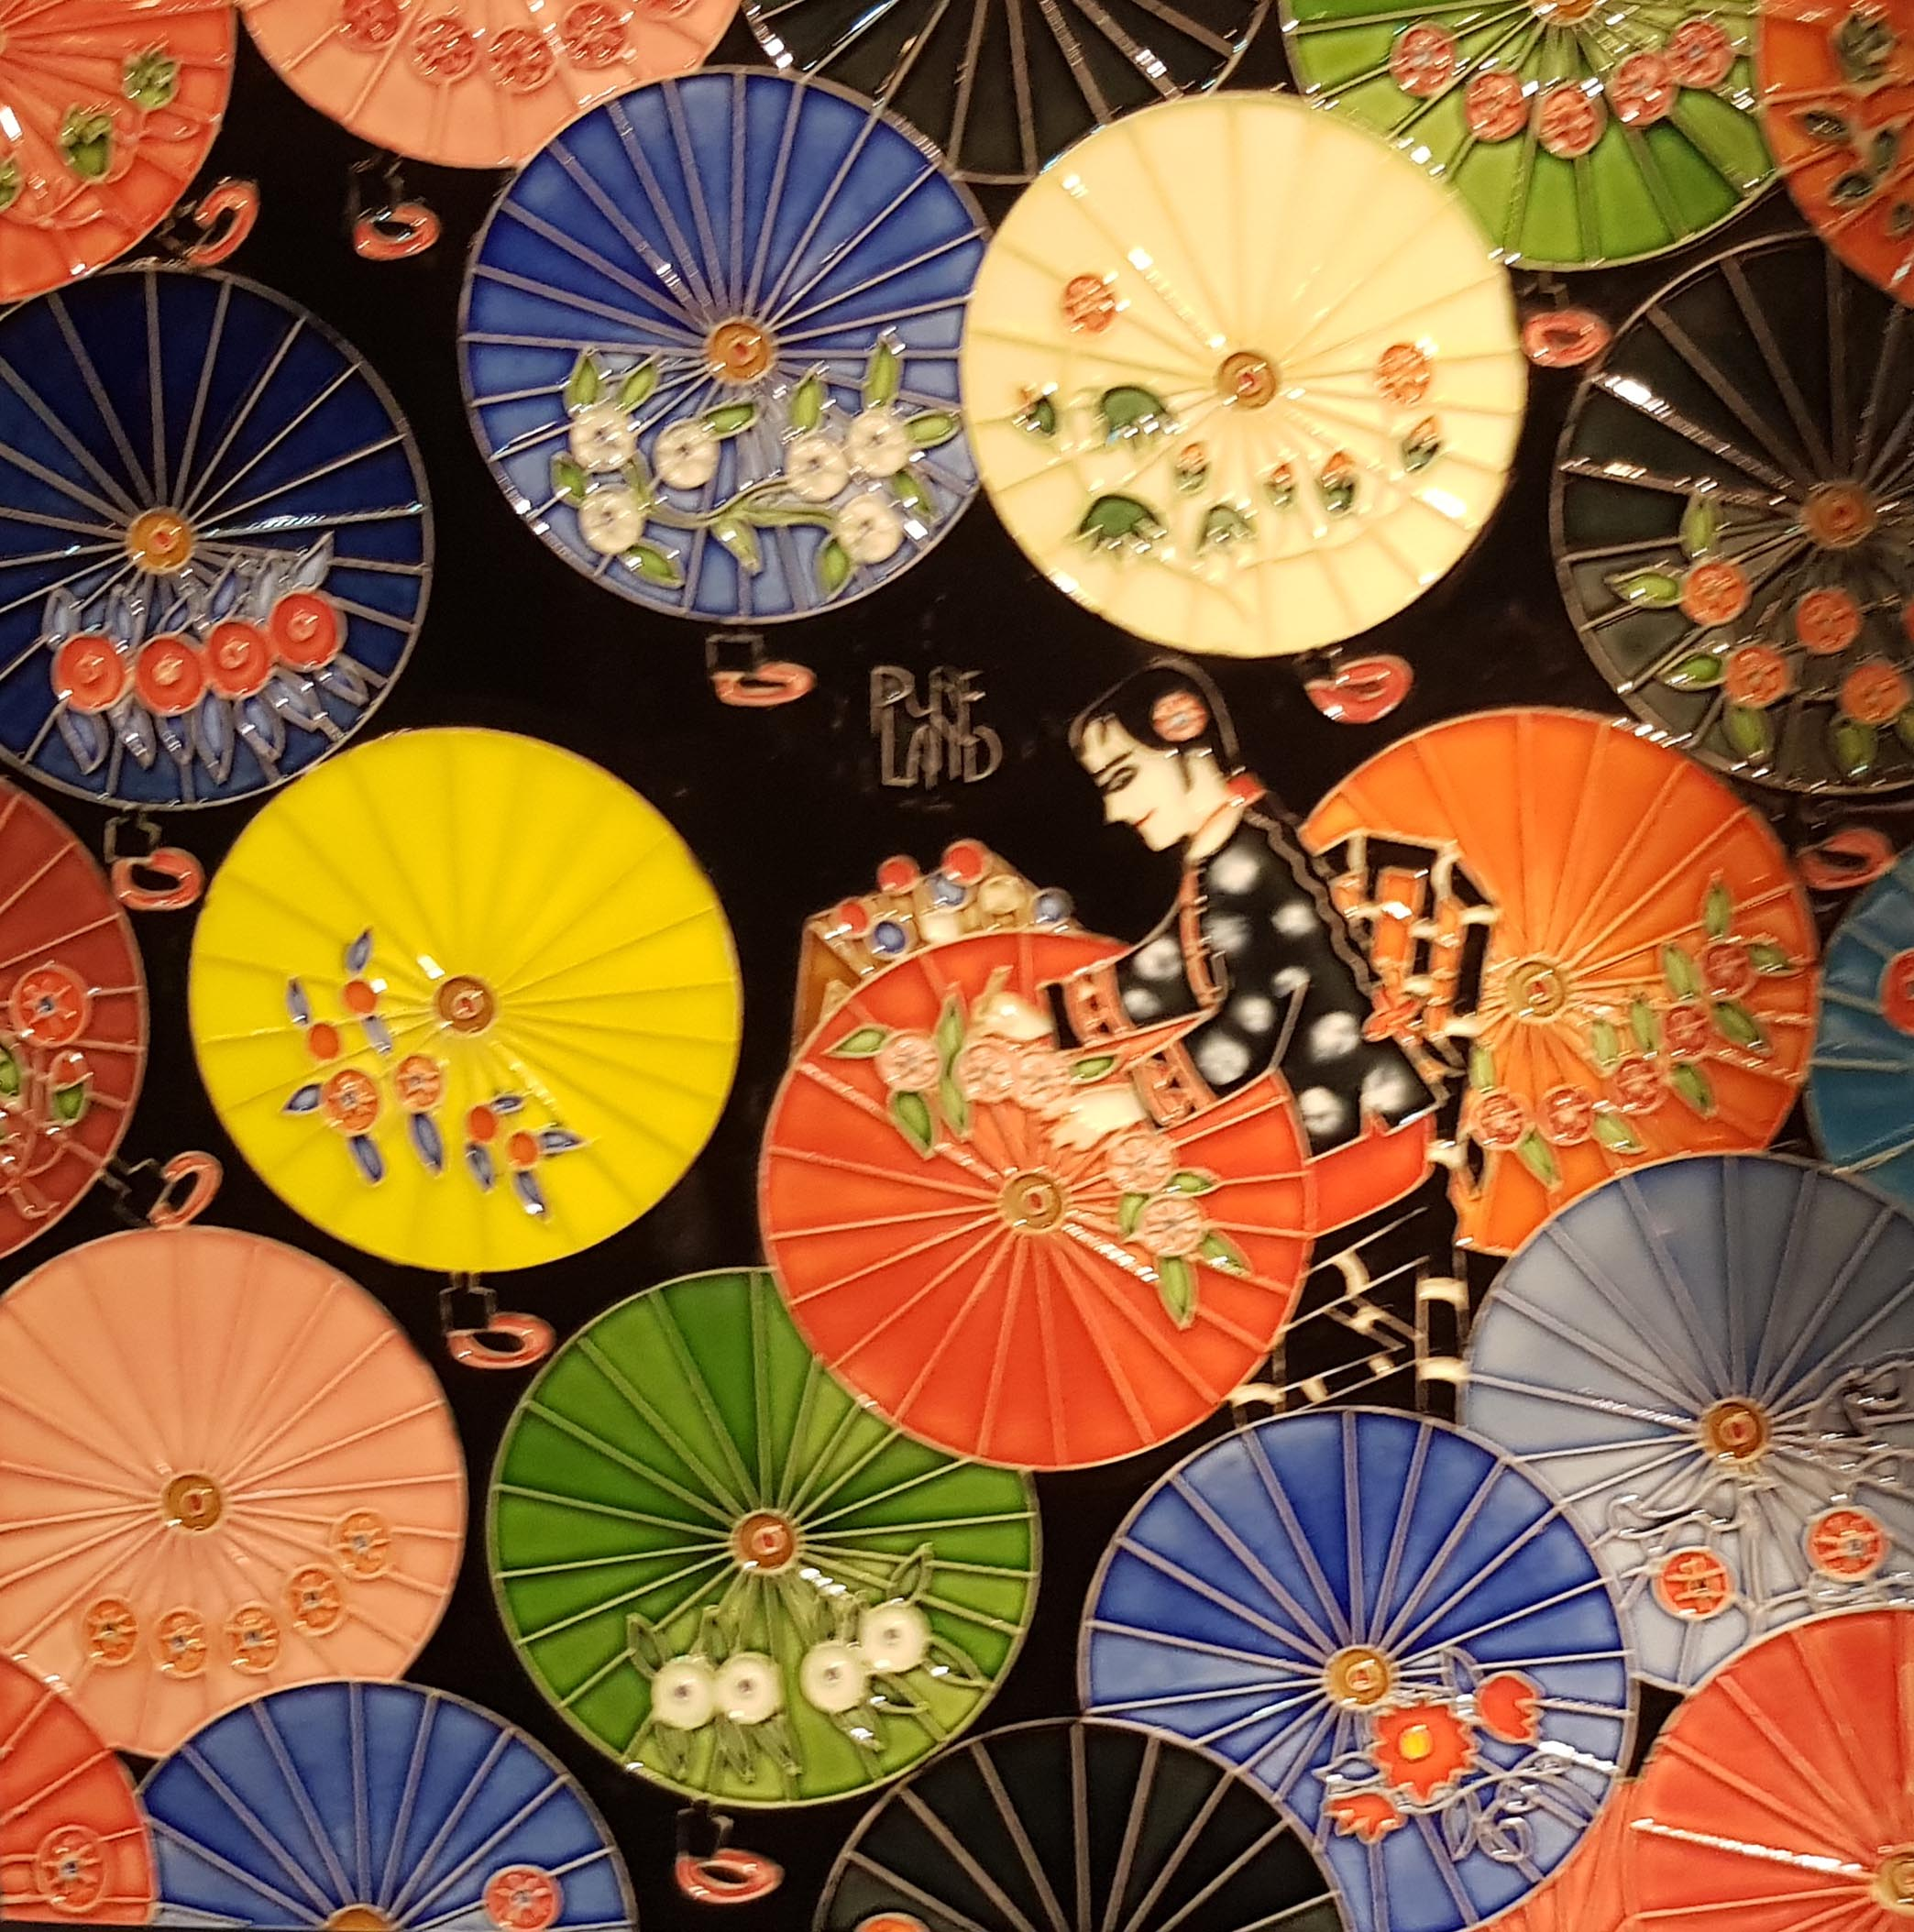 3832 Embroidered Umbrellas 30cm x 30cm Ceramic Tile